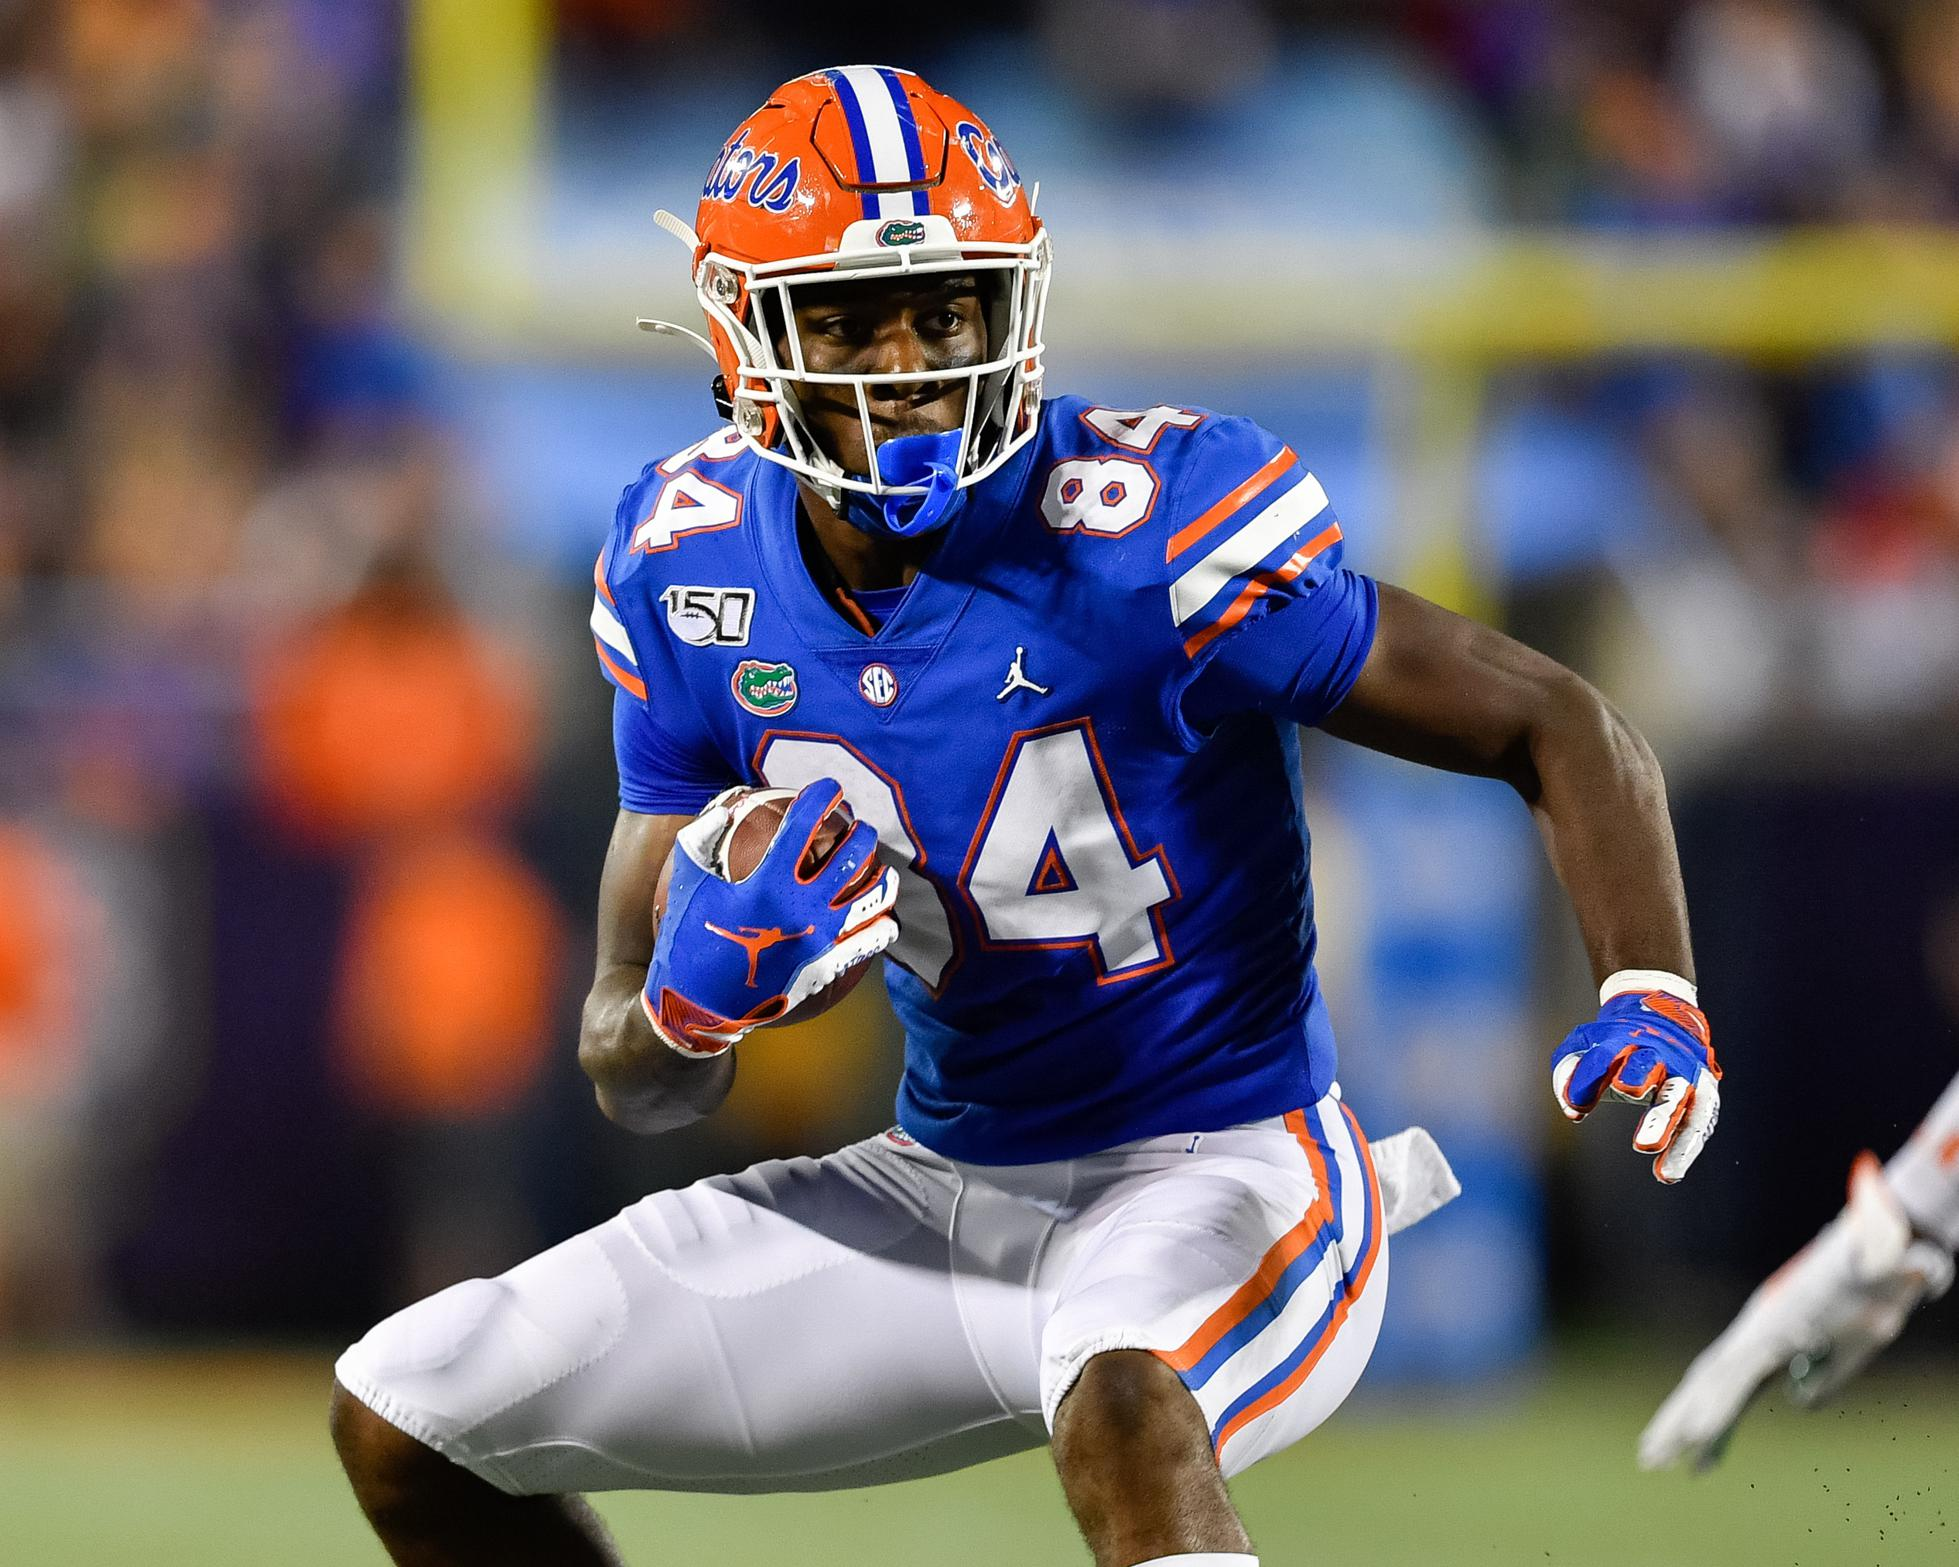 Florida tight end Kyle Pitts.